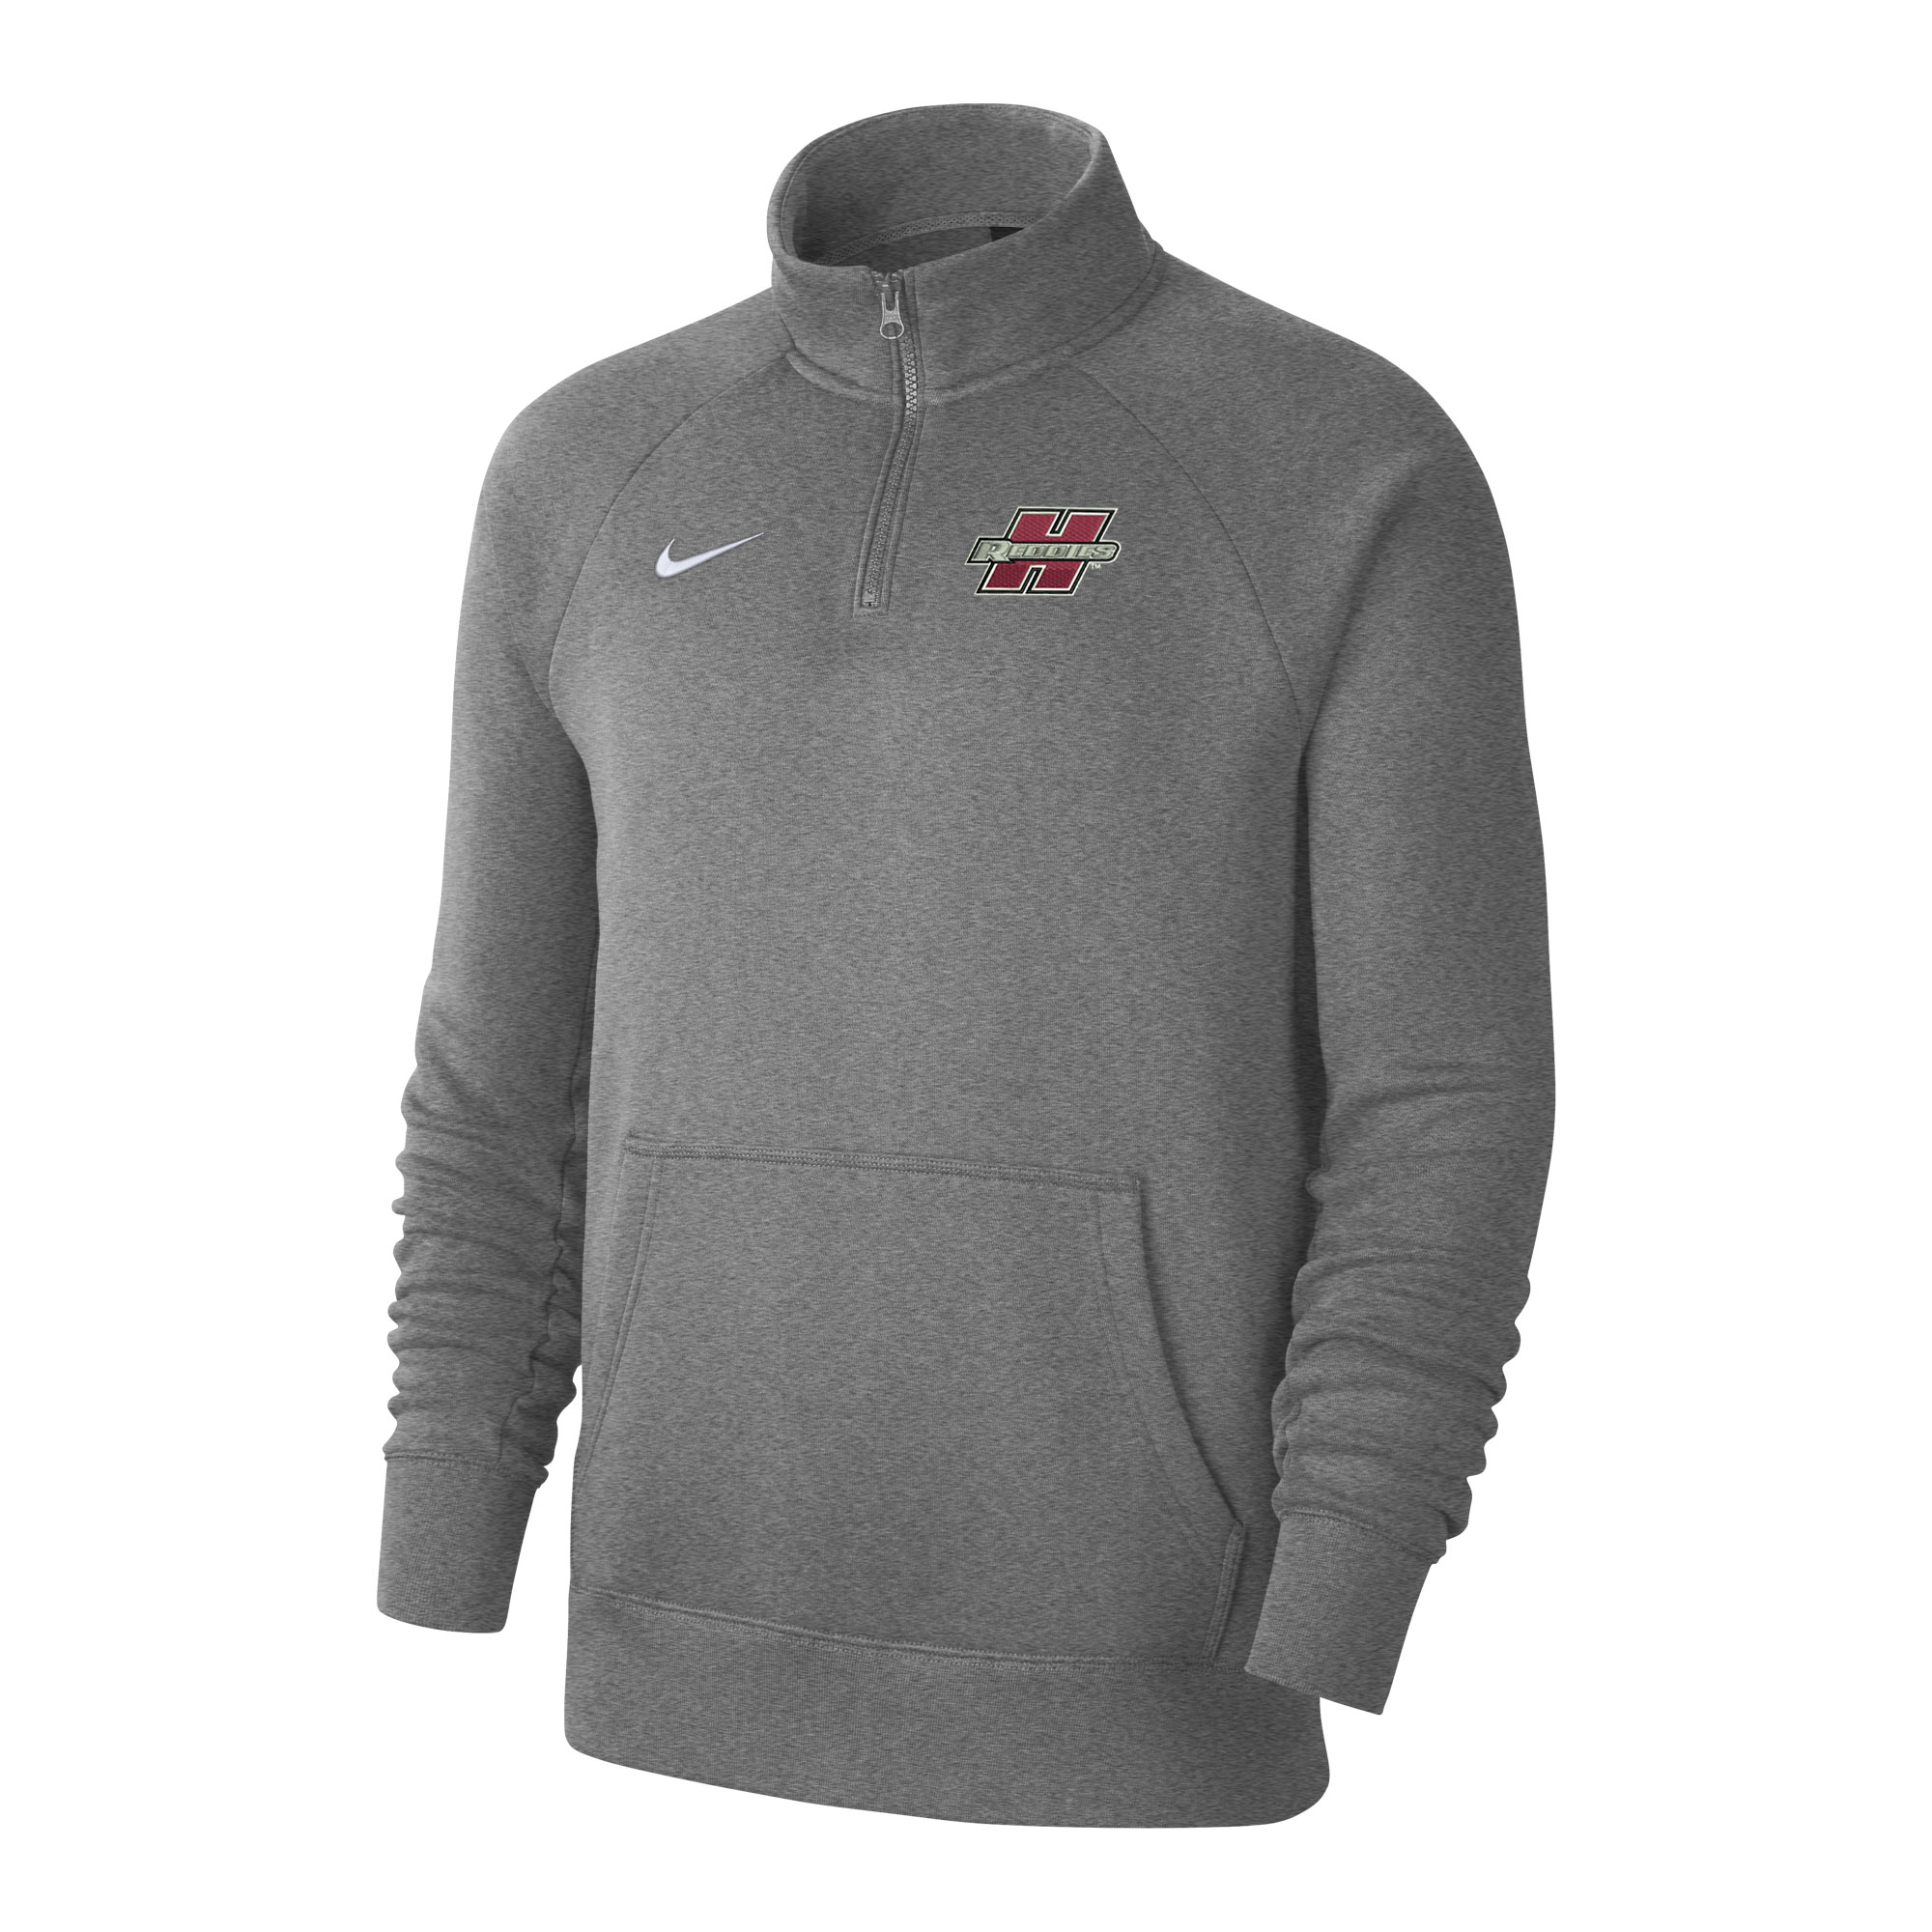 Henderson Reddies Nike Club 1/4 Zip